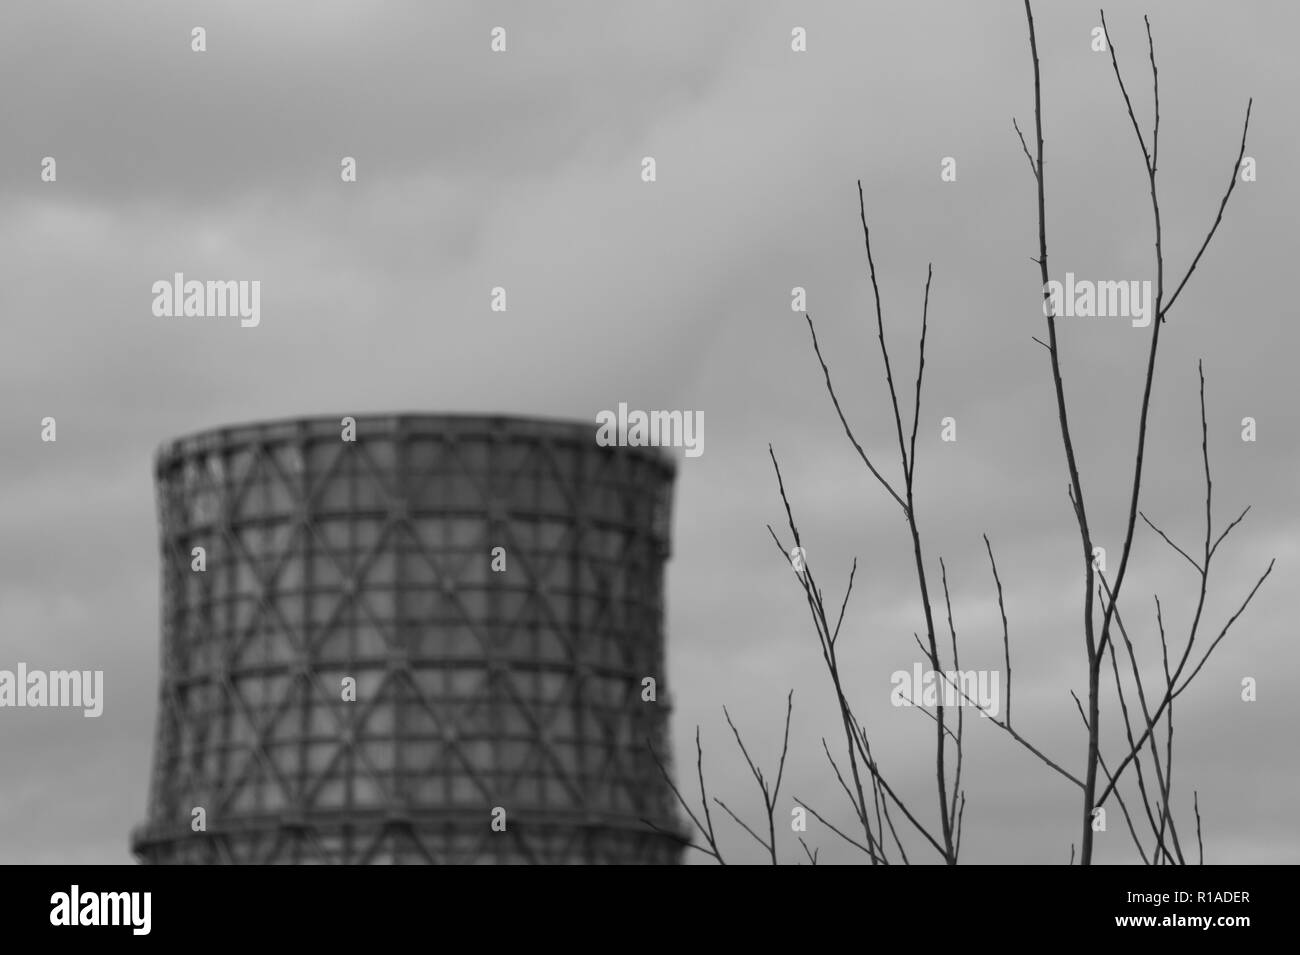 Thermal power plant with smoking chimney. Industrial background - Stock Image